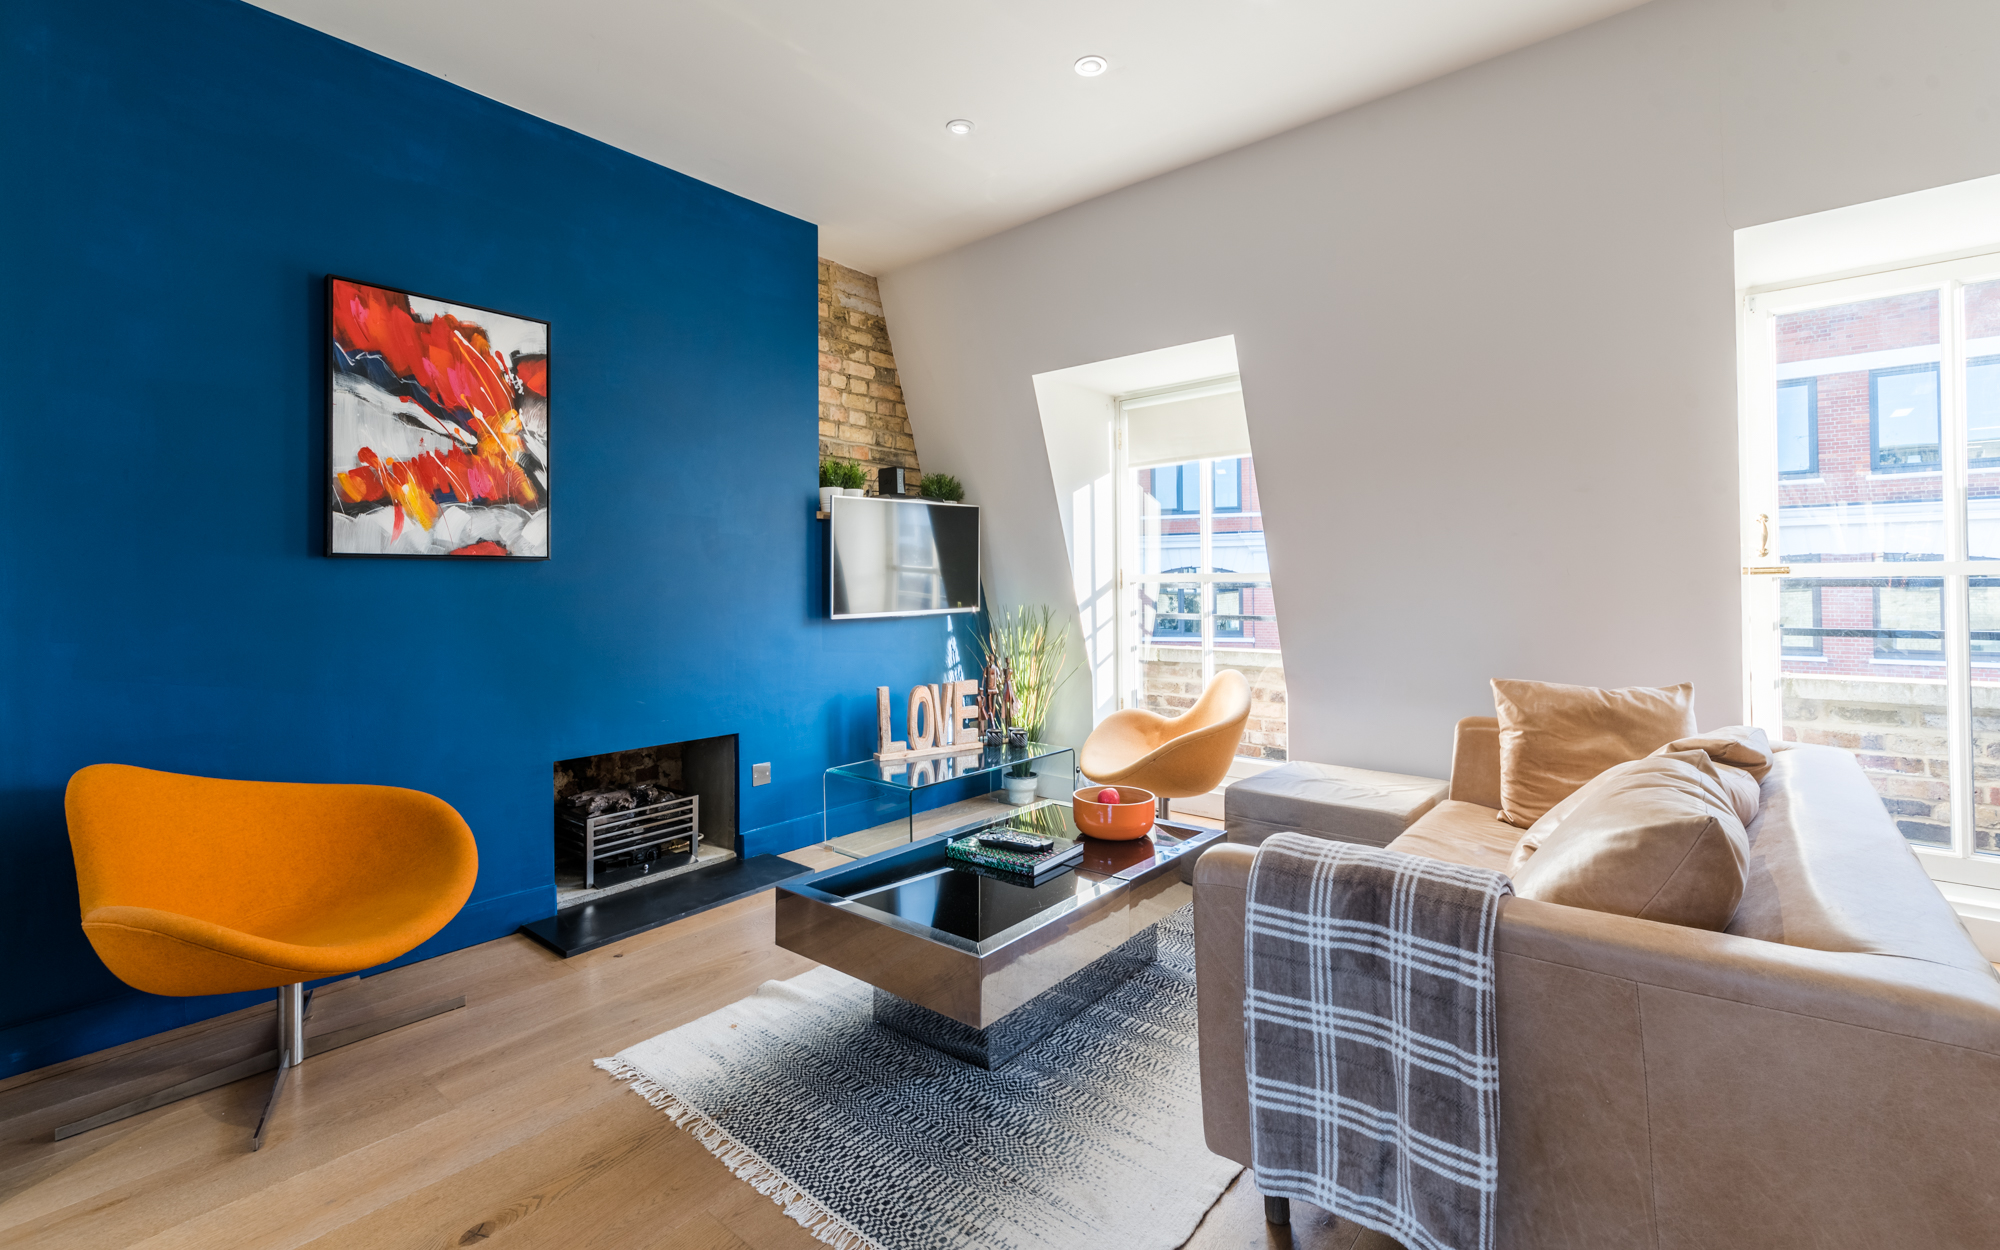 Lovelydays luxury service apartment rental - London - Fitzrovia - Foley Street II - Lovelysuite - 2 bedrooms - 2 bathrooms - Luxury living room - 46b46a42d78f - Lovelydays